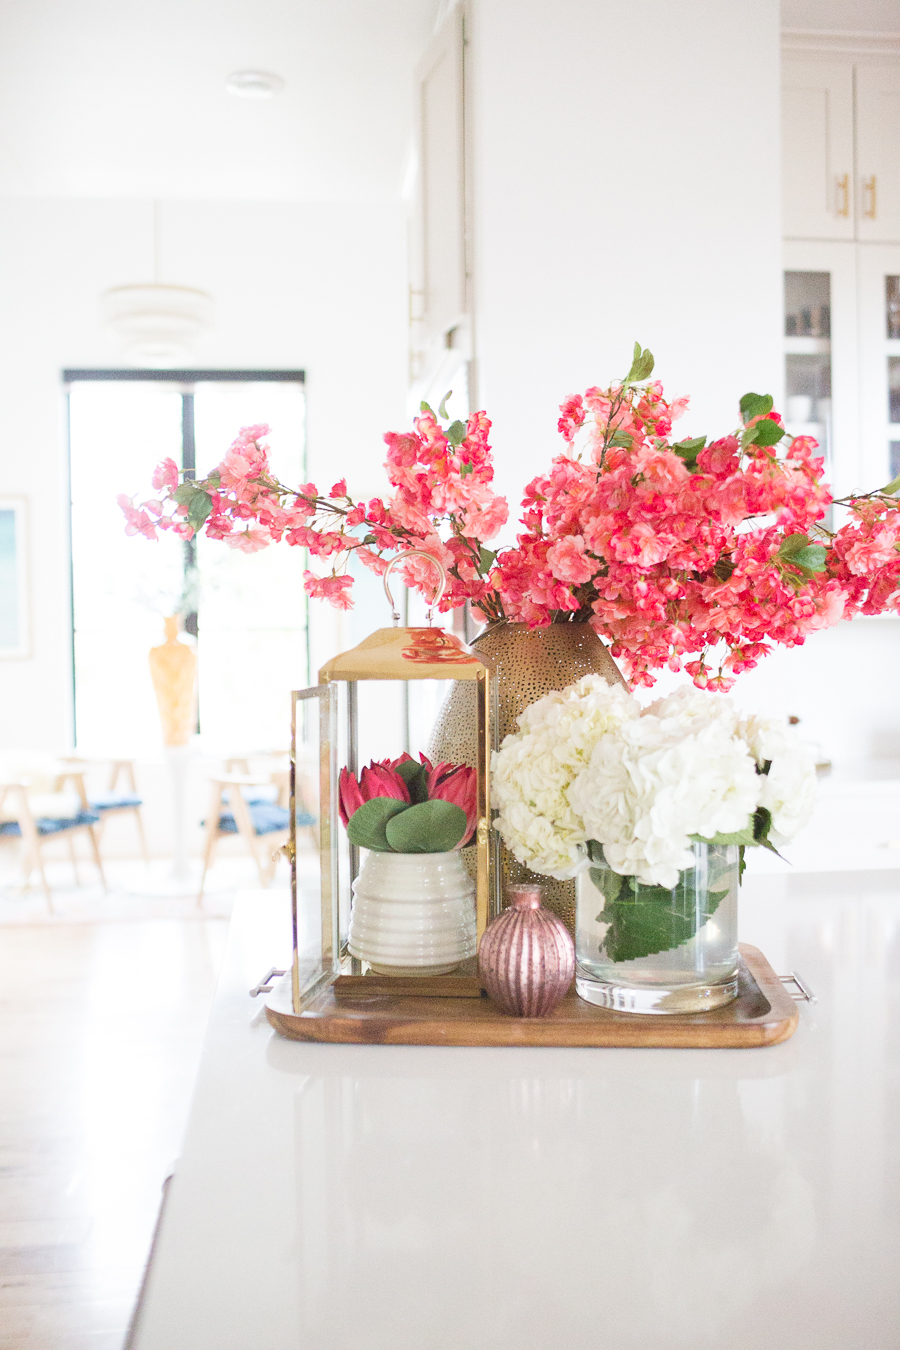 5 Tips to Decorate Your Home with Drew Barrymore Flower Home white quartz waterfall kitchen island with gold bar stools and ann sacks patterned honeycomb backsplash with gold kitchen lanterns and pink flowers styled in a kitchen